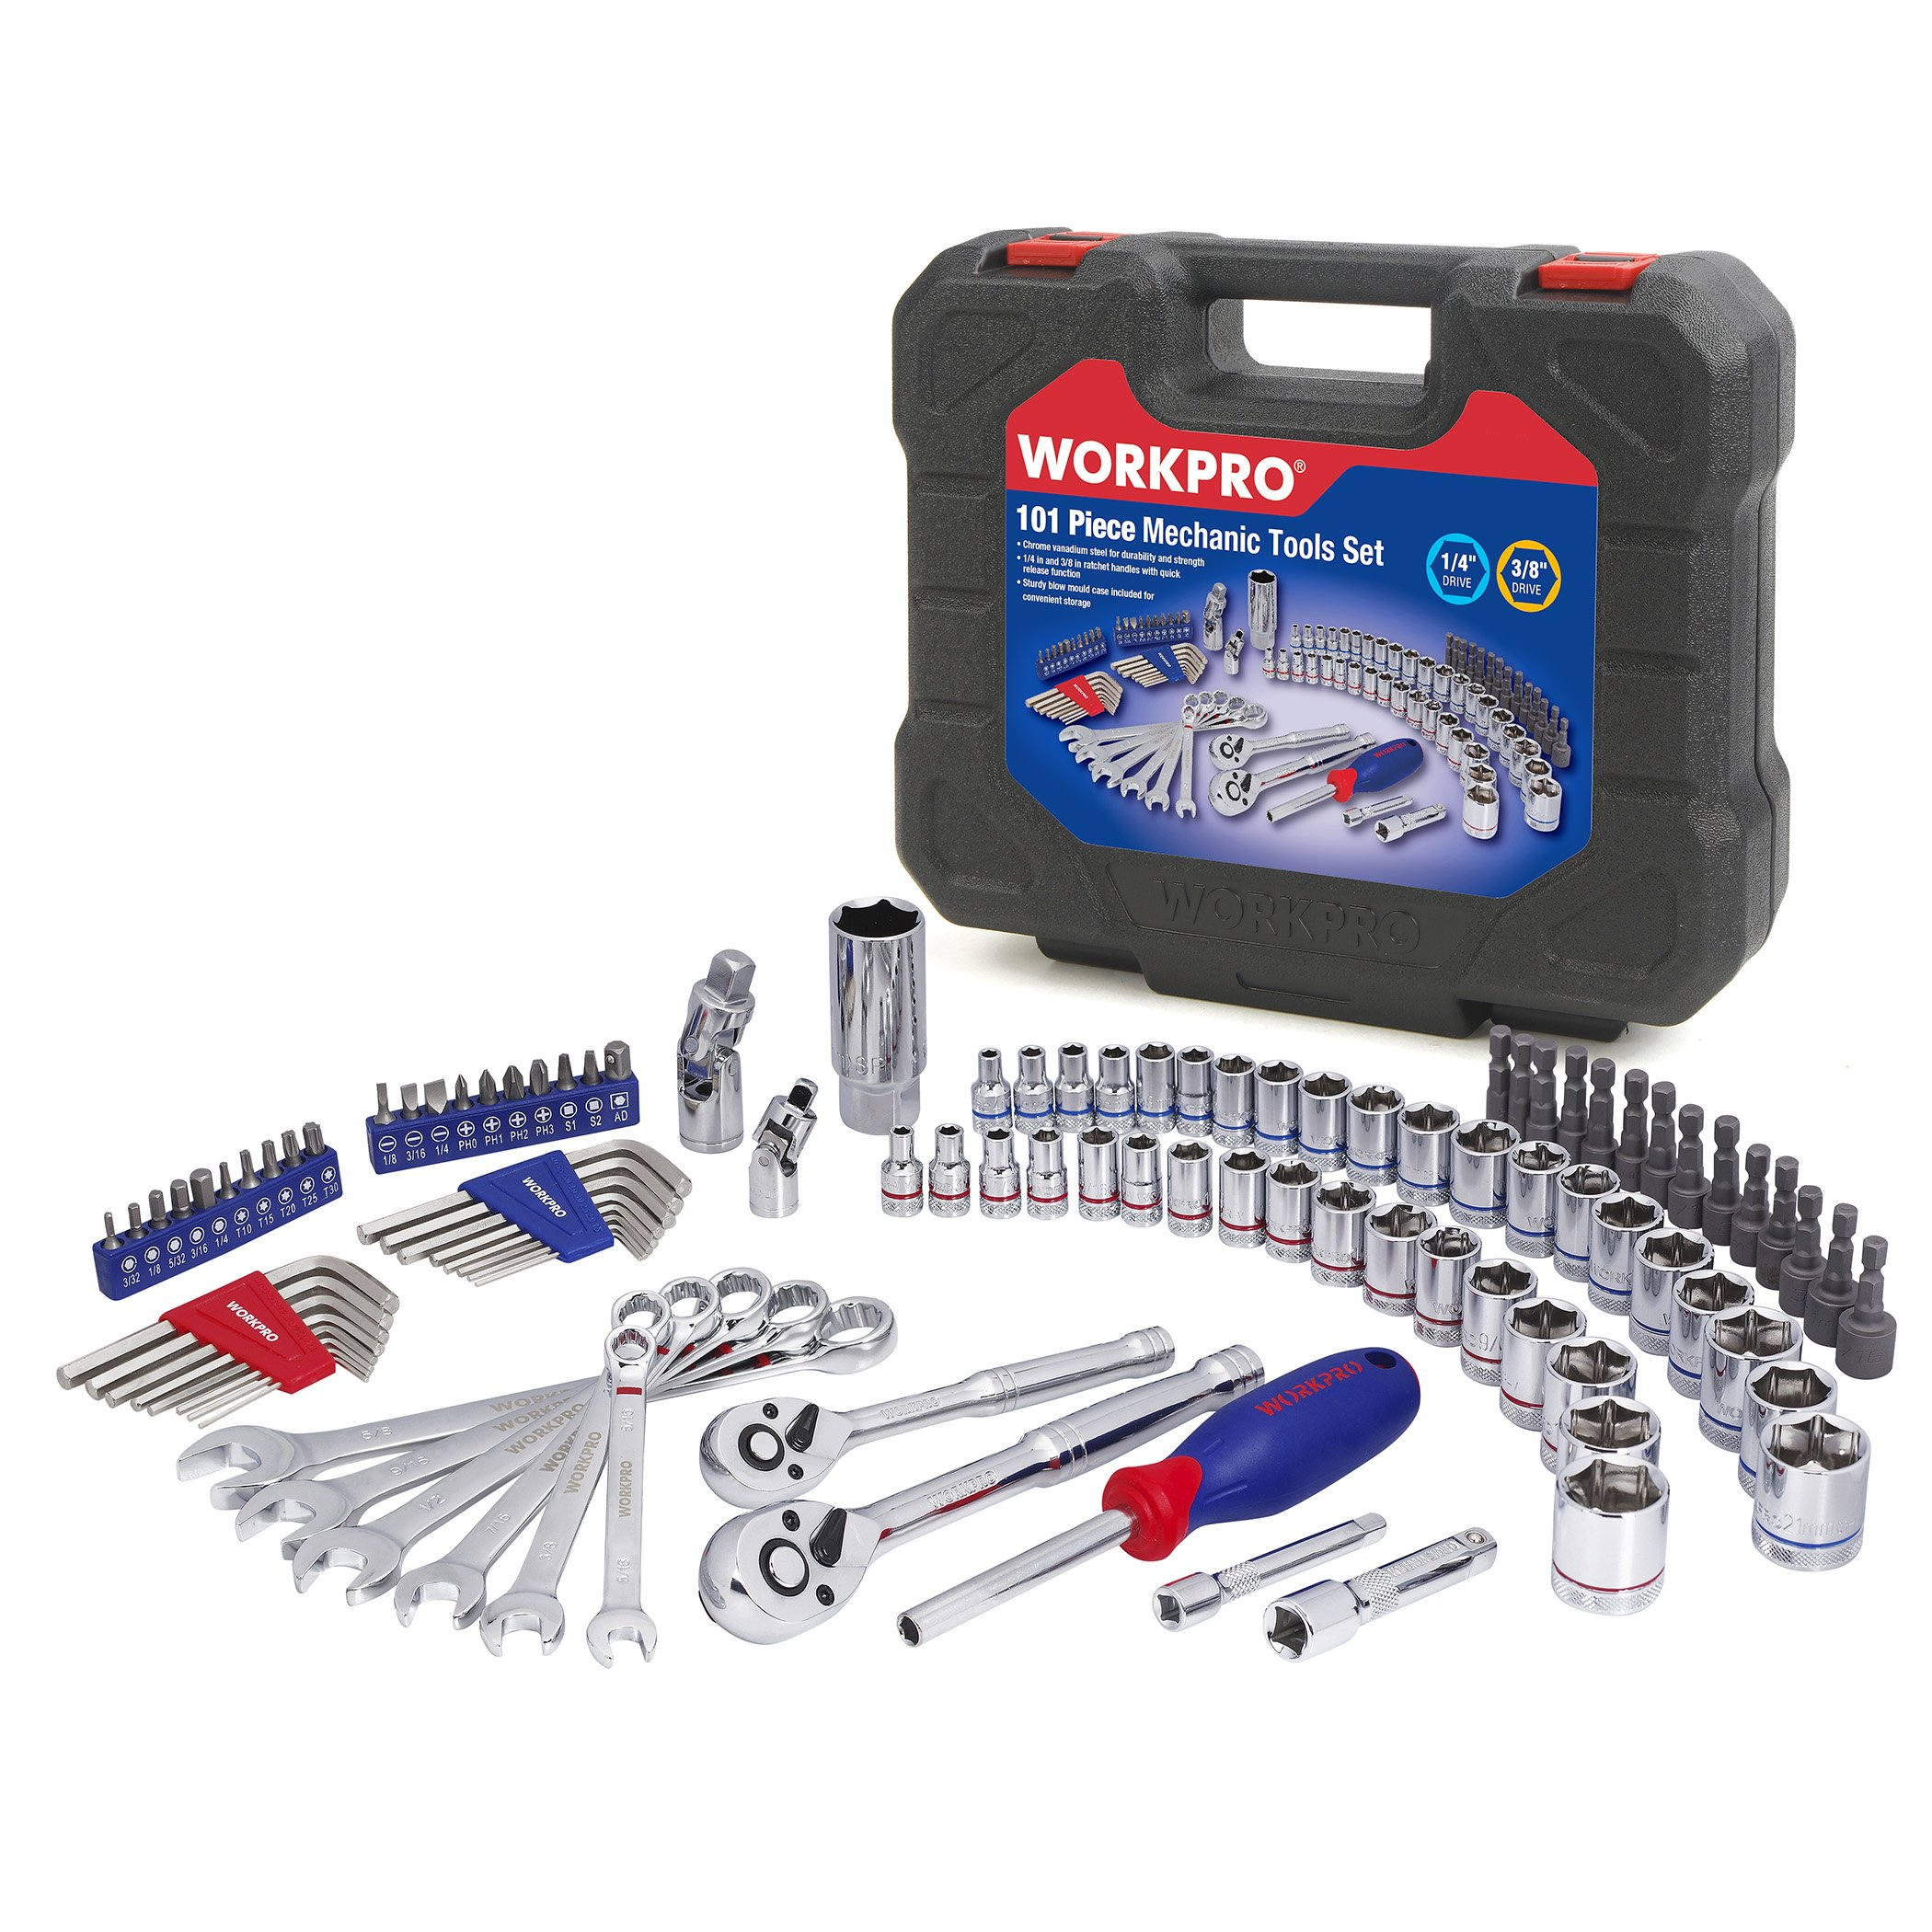 WORKPRO Drive Socket Wrench Set, 101-piece 3/8-inch and 1/4-inch Quick-Release Ratchets Set with Blow Molded Case